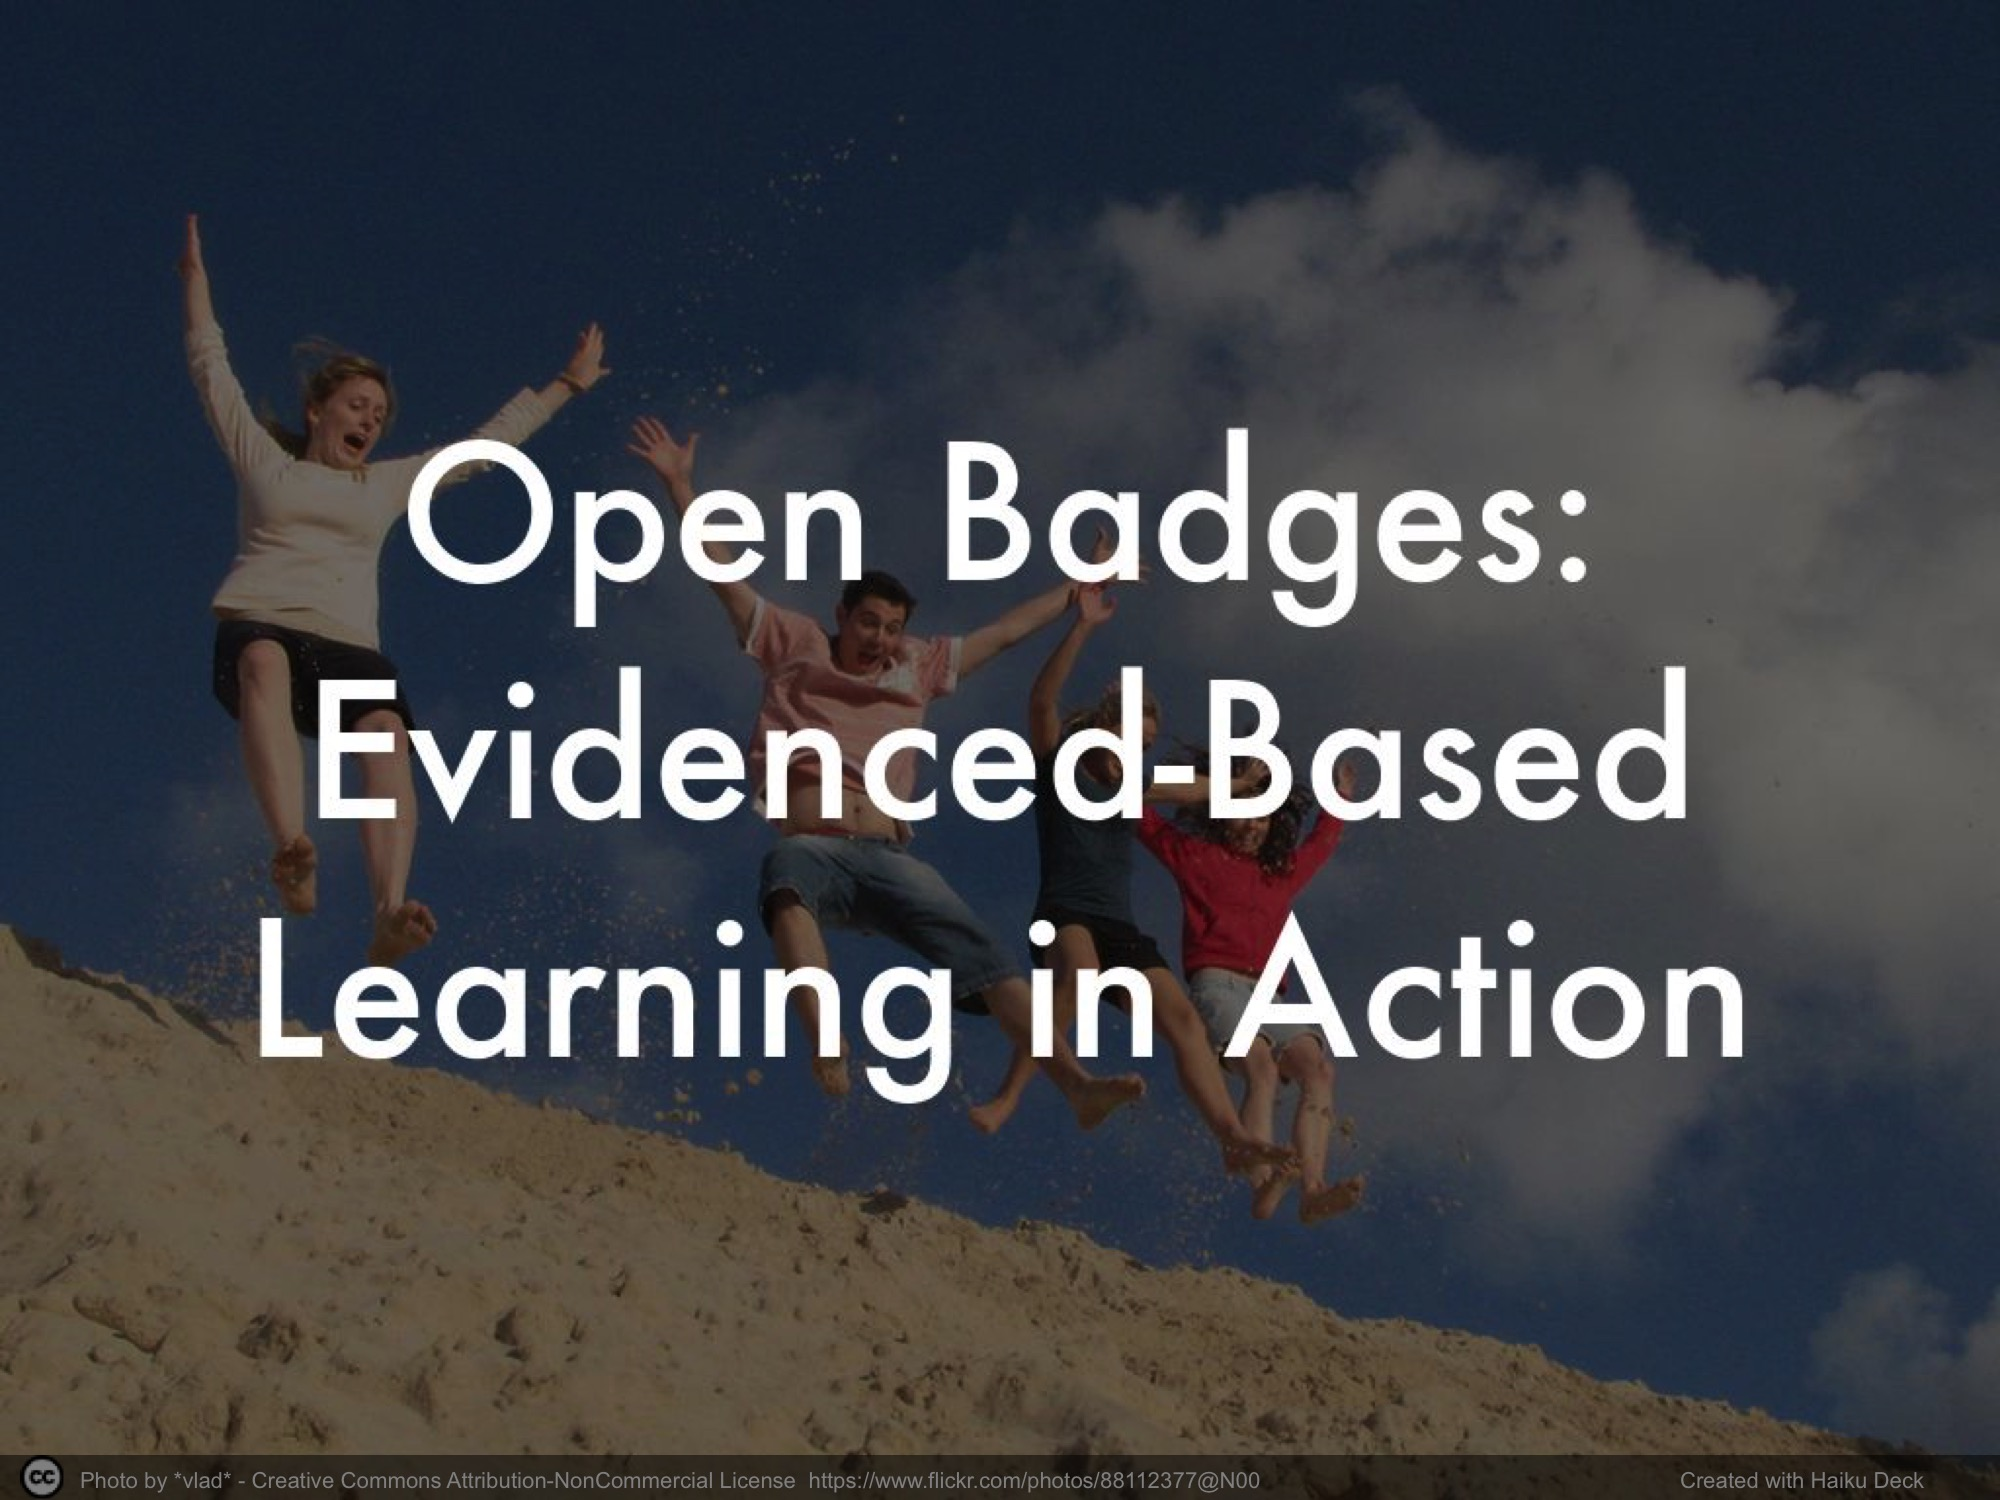 Open Badges: Evidence-Based Learning in Action